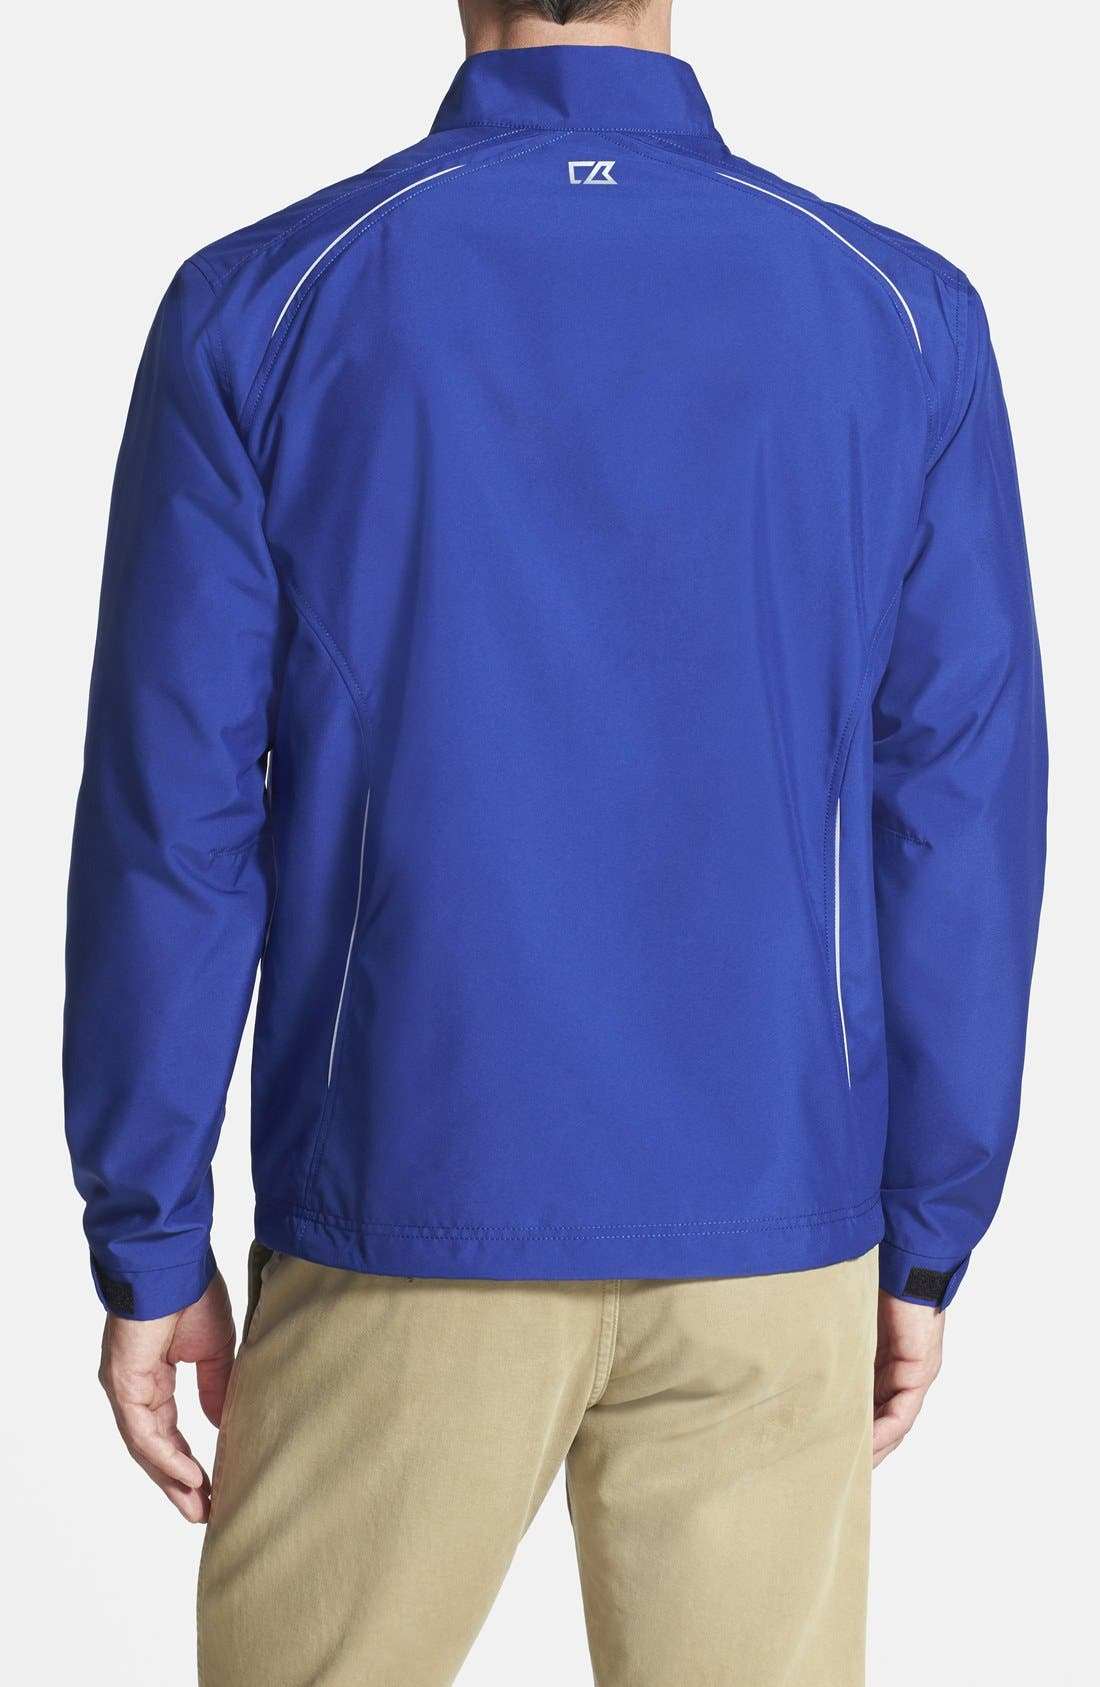 Buffalo Bills - Beacon WeatherTec Wind & Water Resistant Jacket,                             Alternate thumbnail 2, color,                             462